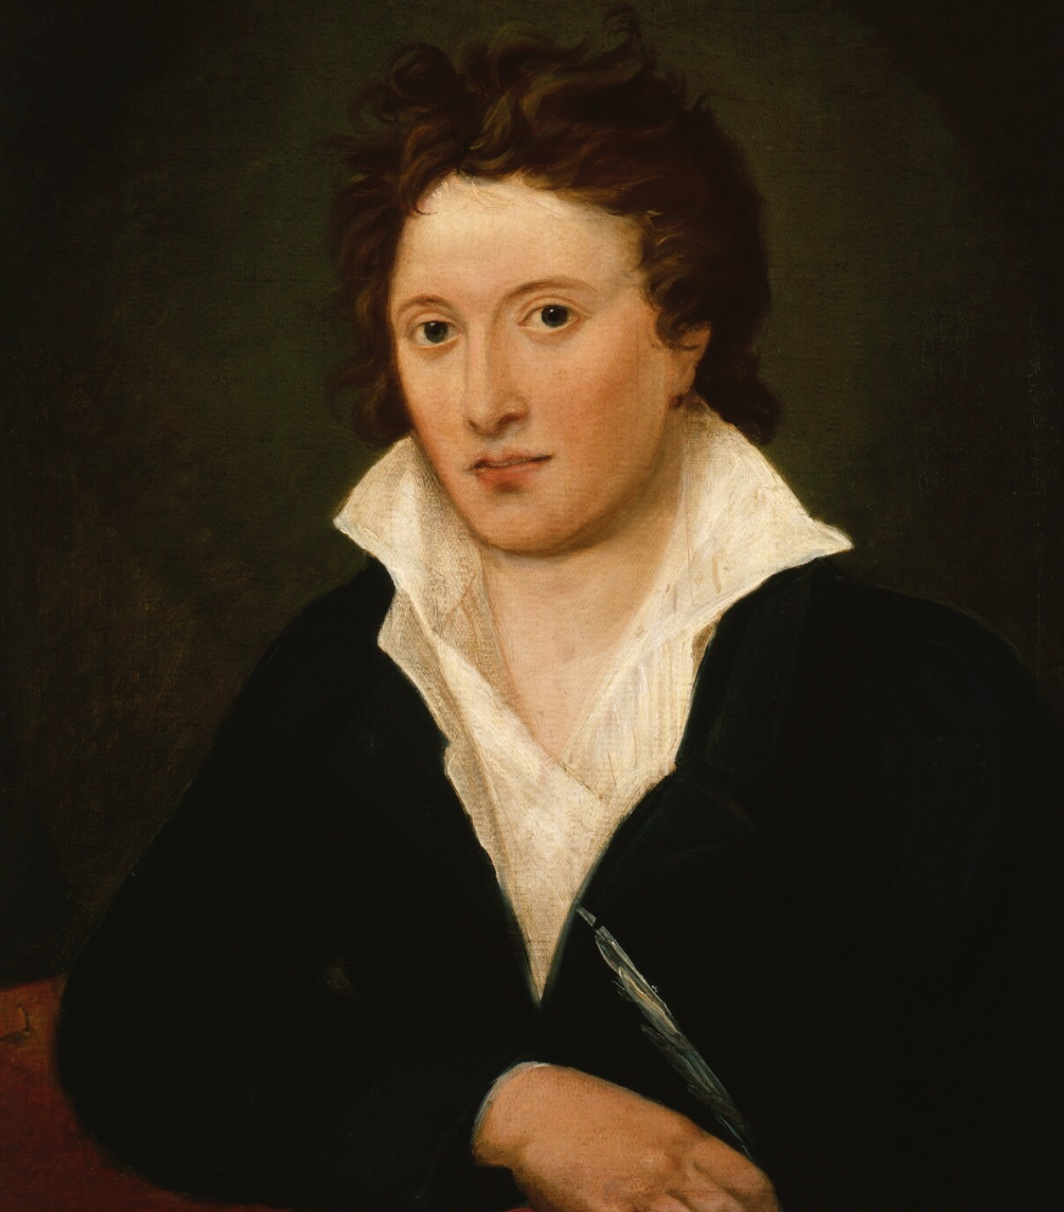 Percy Bysshe Shelley, 1819, by Amelia Curran (National Portrait Gallery, NPG         1234). Click to enlarge.